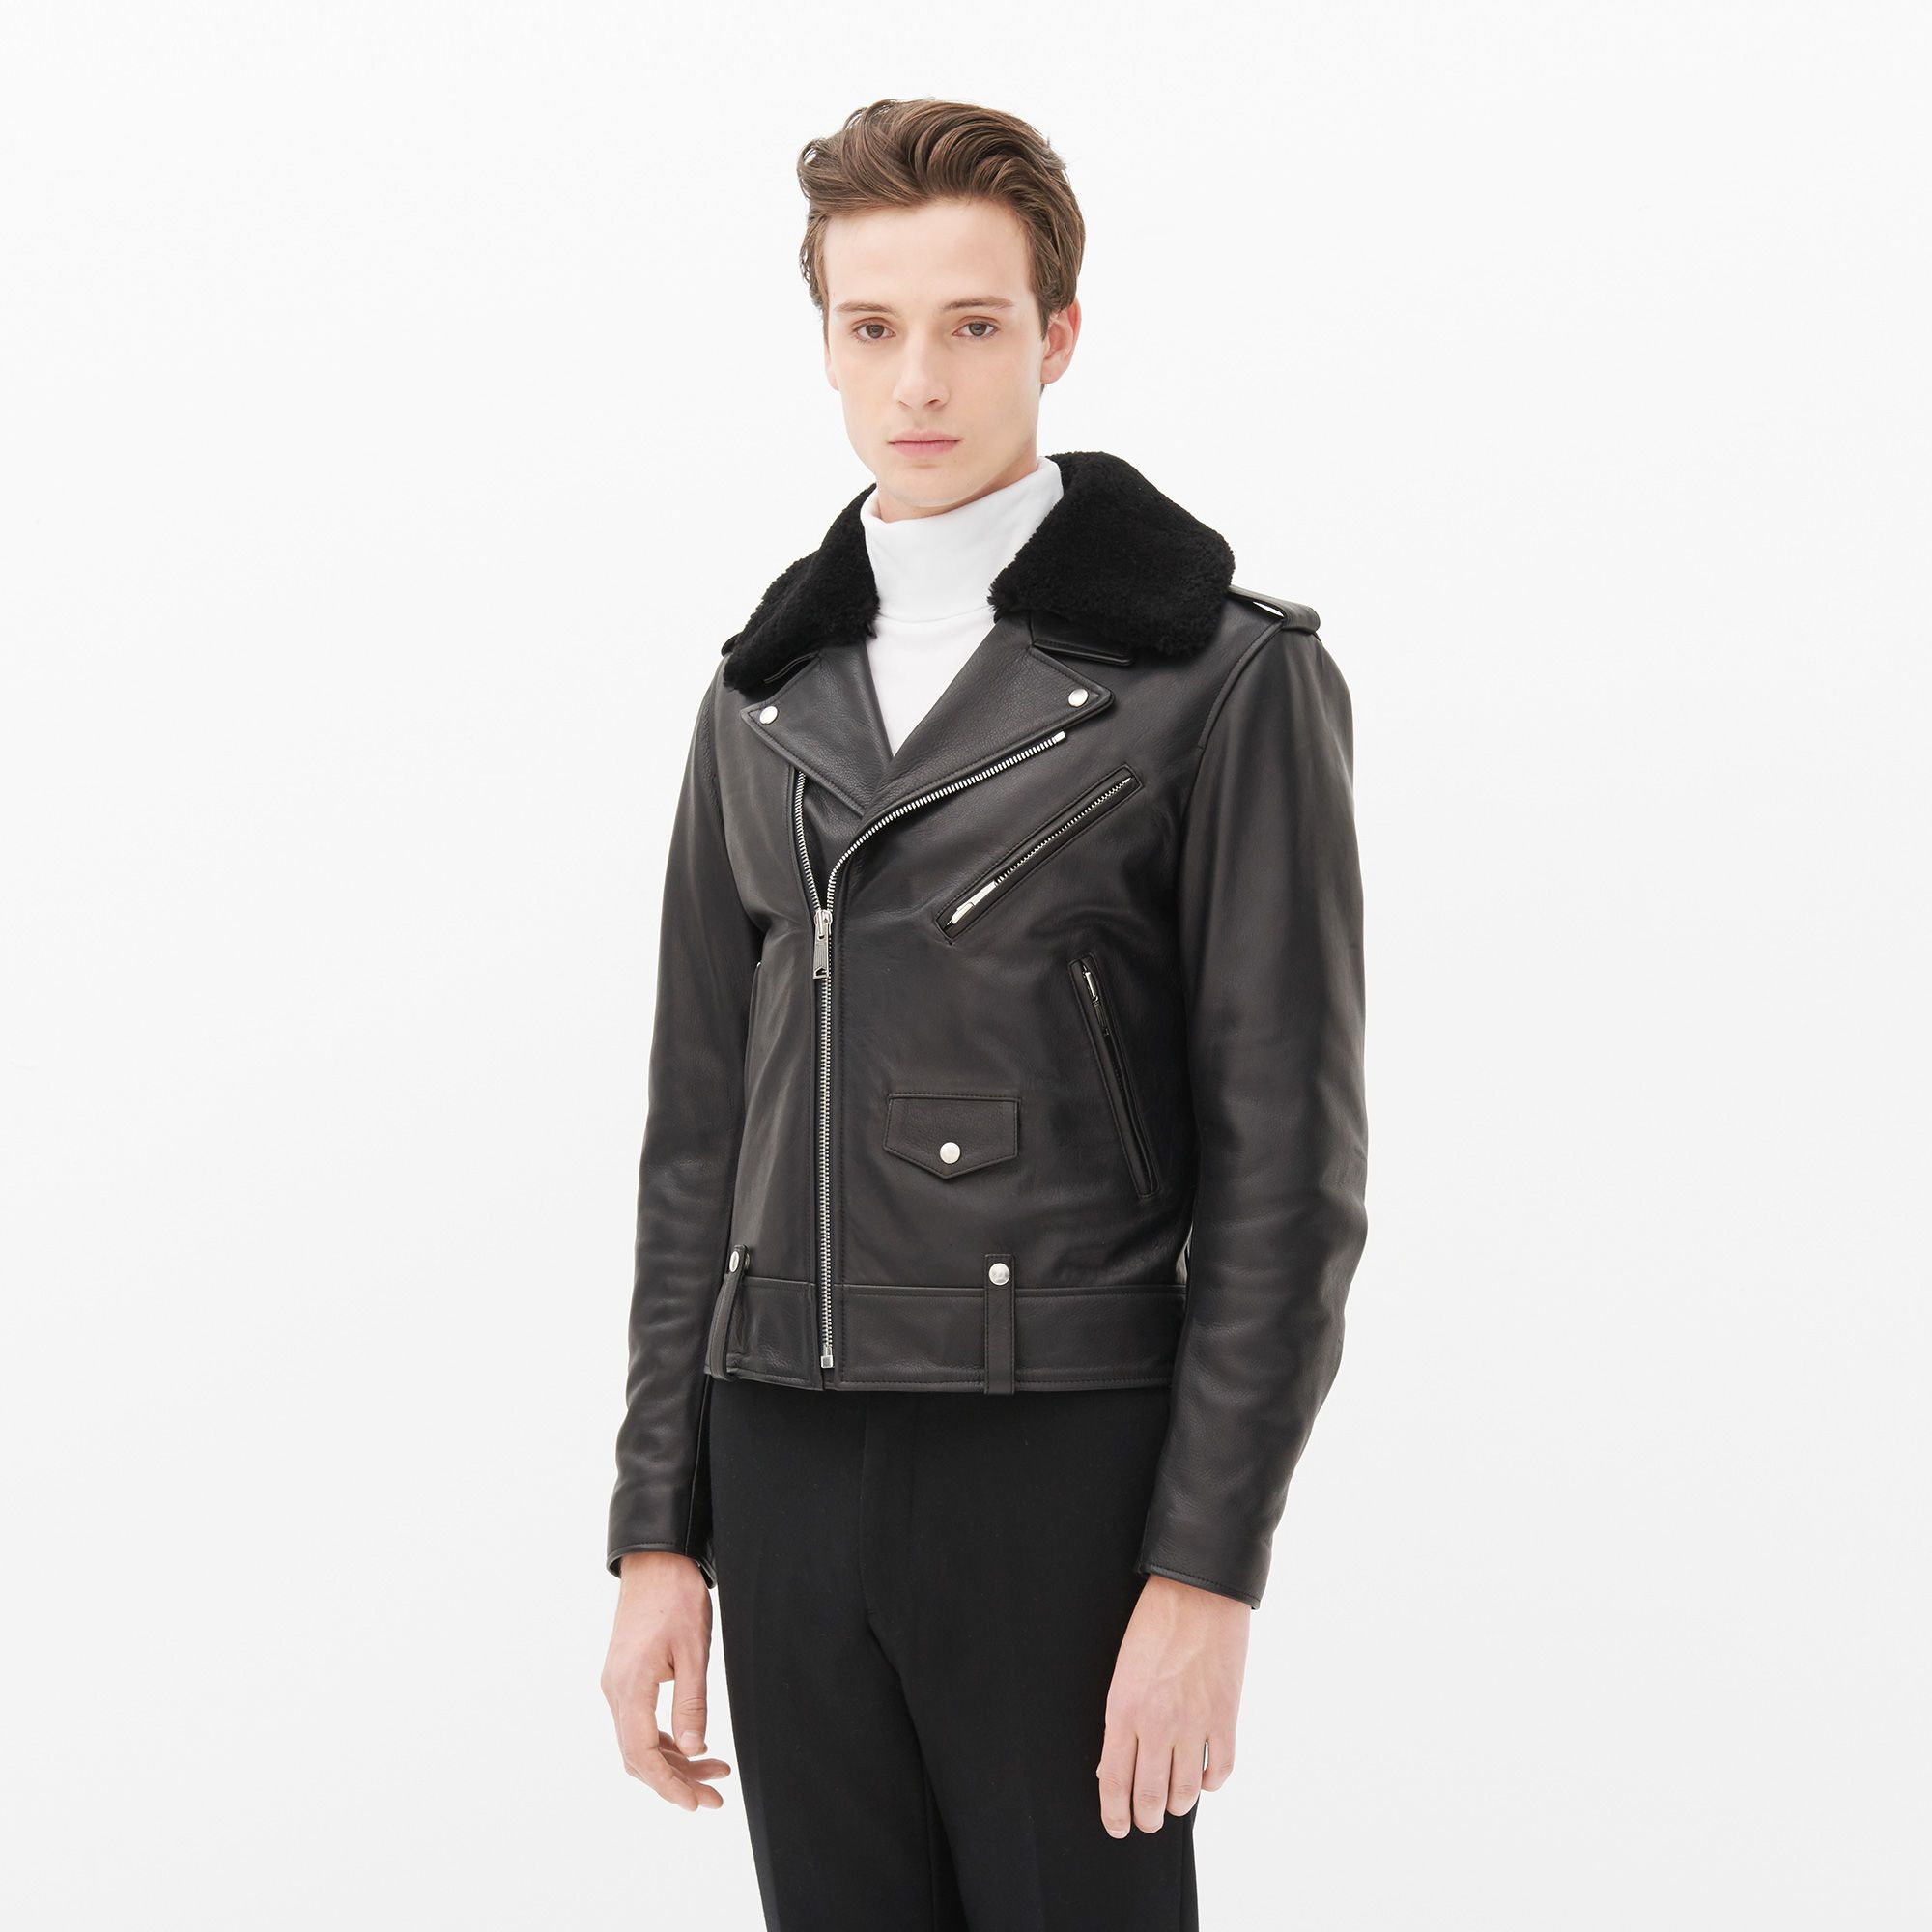 7ce410318 Weapon - Leather Jackets - Sandro-paris.com | Mine | Sandro, Jackets ...